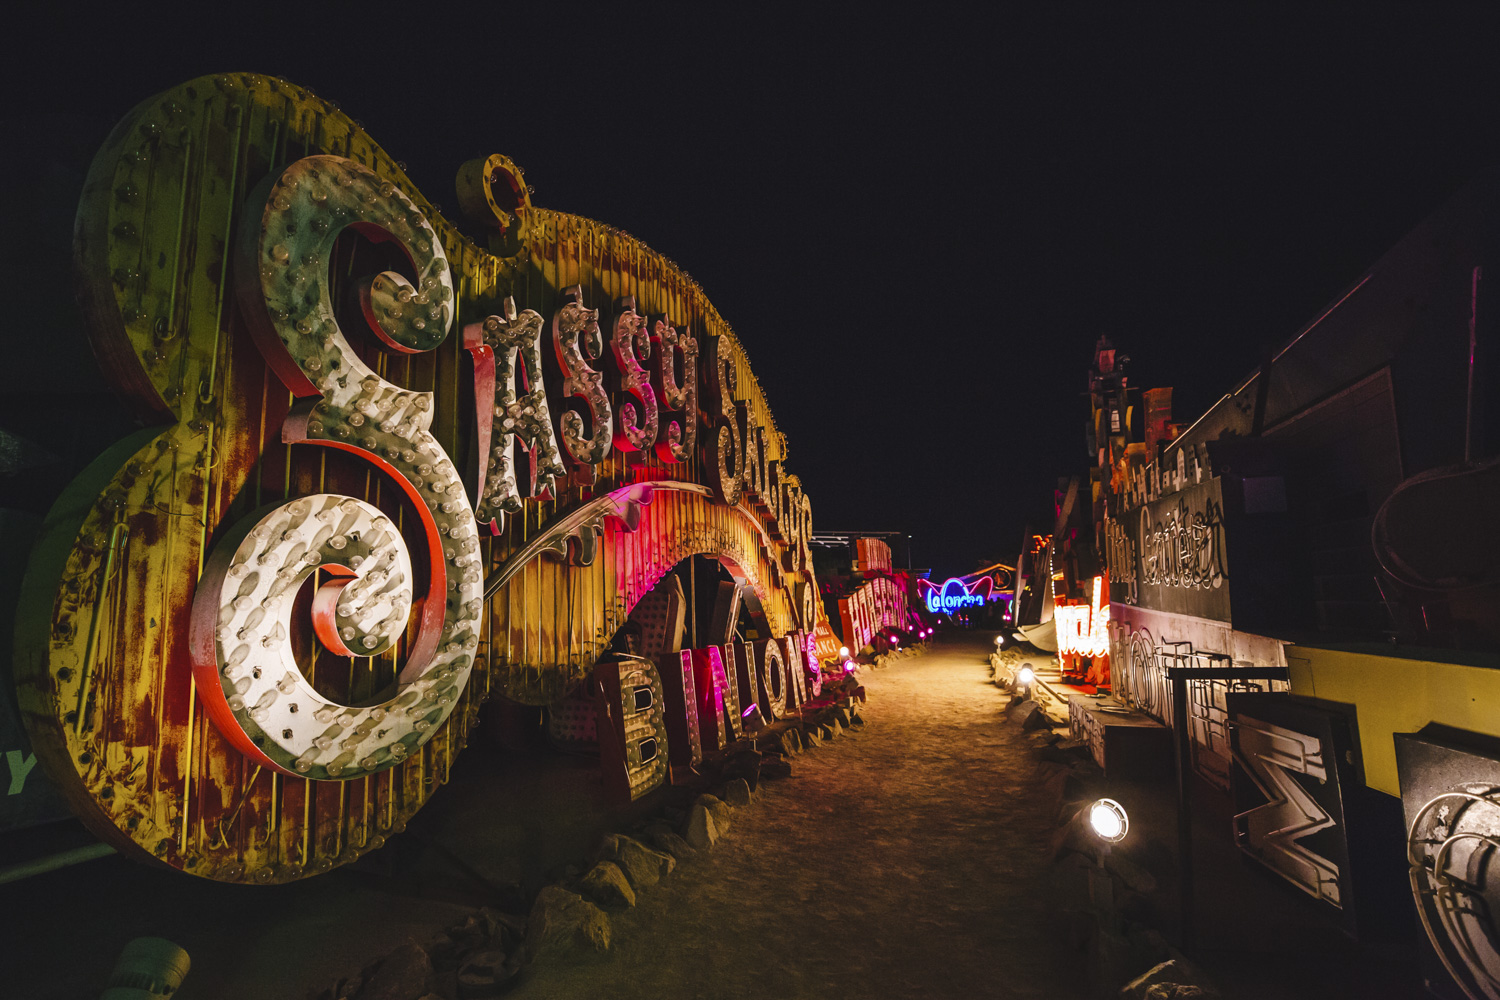 "Neon Museum. Las Vegas may be best known for its sinful side but there's more to this modern metropolis than losing your shirt. Not the gambling type? A tour of the city's faded relics at The Neon Museum is great for both history buffs and Instagramming your heart out. Get same-day discount tickets to check out one (or more) of Cirque Du Soleil's seven different local shows for a masterful performance. Vegas is a hotbed of buzz-worthy eateries that don't involve buffets, so do your tummy a favor try the melt-in-your-mouth pork belly buns at Momofuku and don't even think about leaving before digging into the neighboring Milk Bar's cereal milk ice cream with cornflake crunch. It really does taste just like the milk at the bottom of a bowl of cornflakes! And while you can no longer catch Britney Spears like us, there are countless headlining musical acts in town that redefine the term ""production."" From Flying high down the Fremont Street zip-line to pretending you're in the movies in front of the Bellagio fountains, don't miss out on all Las Vegas has to offer just outside the casinos. (Image: Sunita Martini)"